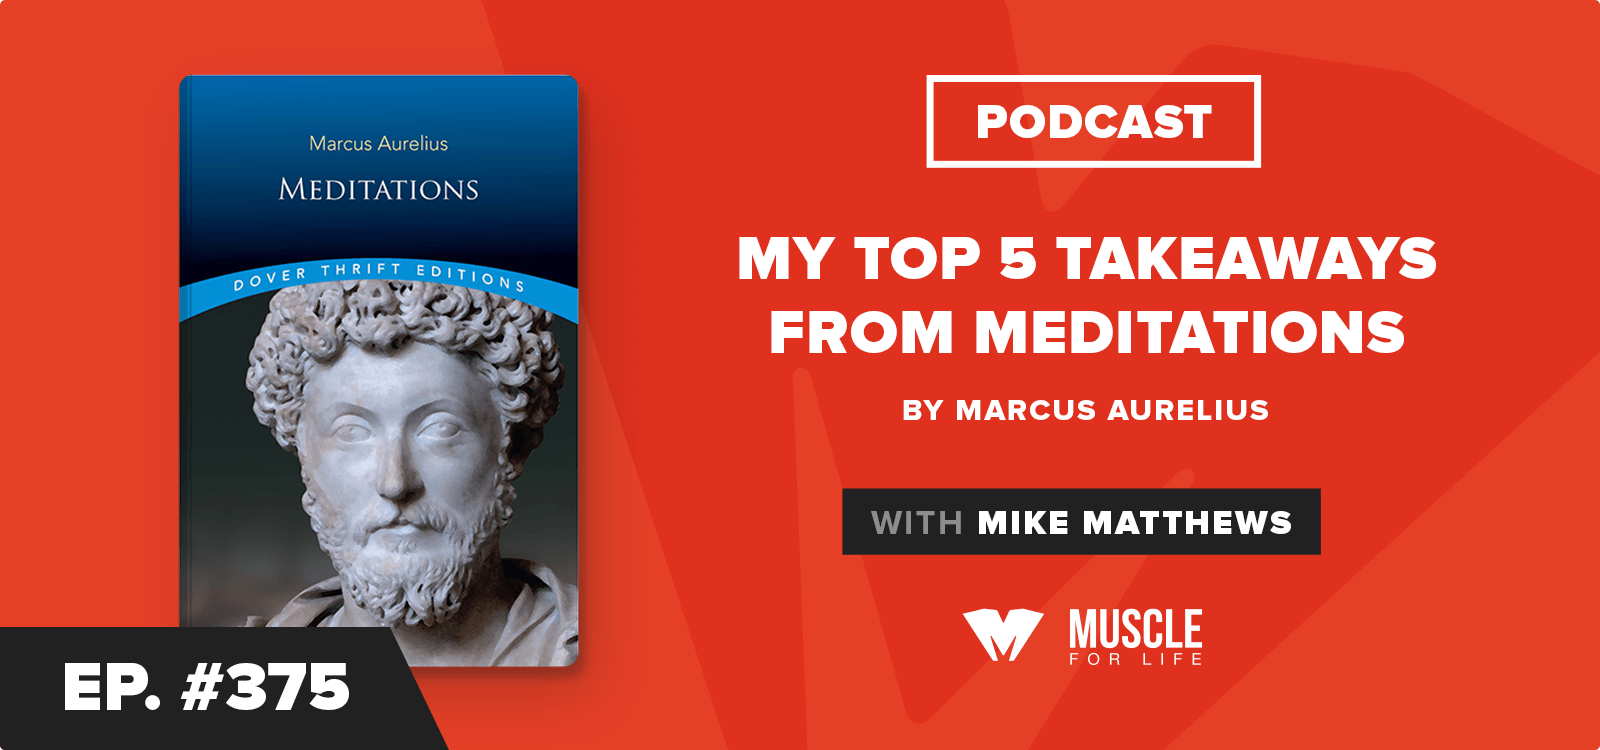 Book Club Podcast: My Top 5 Takeaways from Meditations by Marcus Aurelius